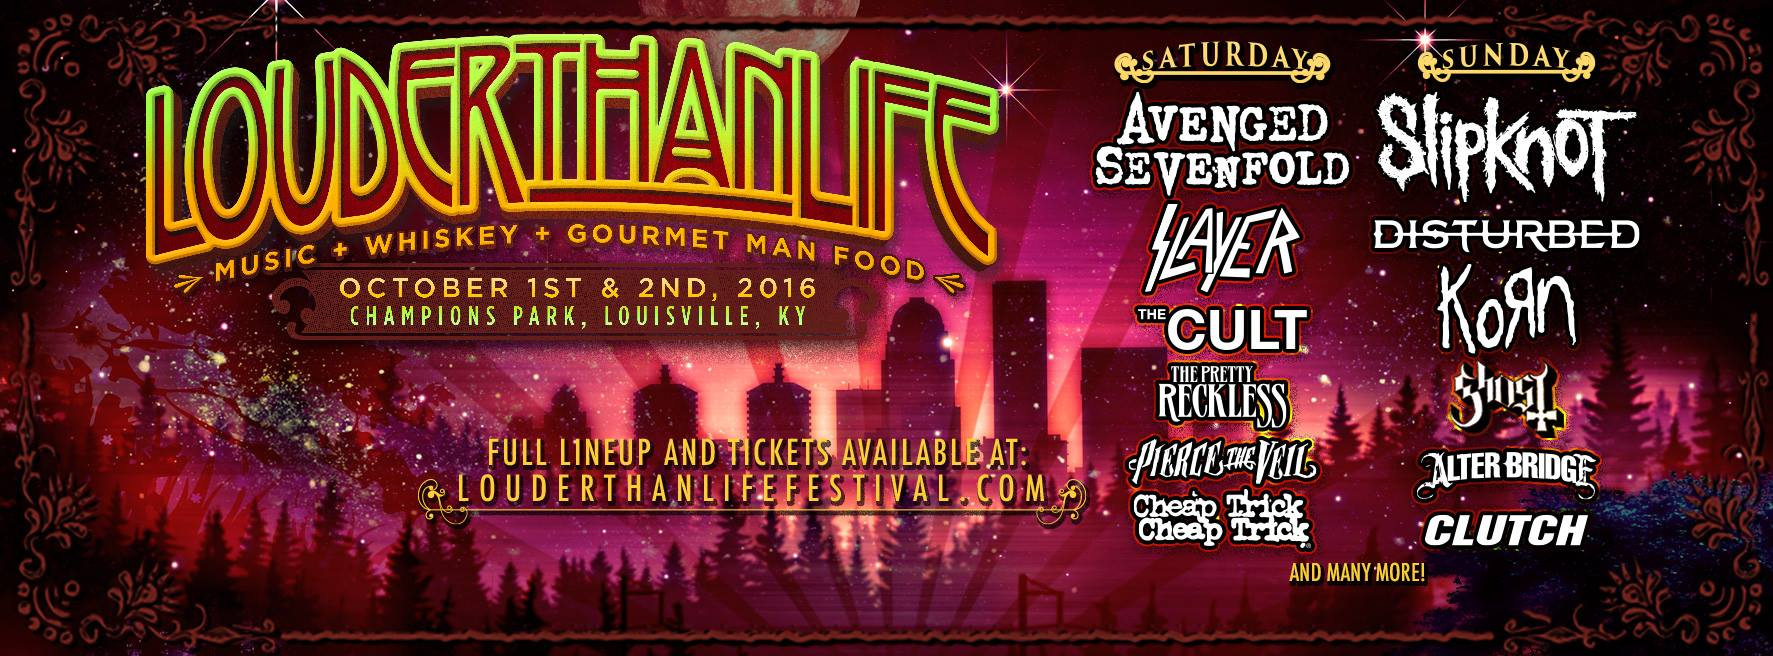 image for event Louder Than Life Music Festival